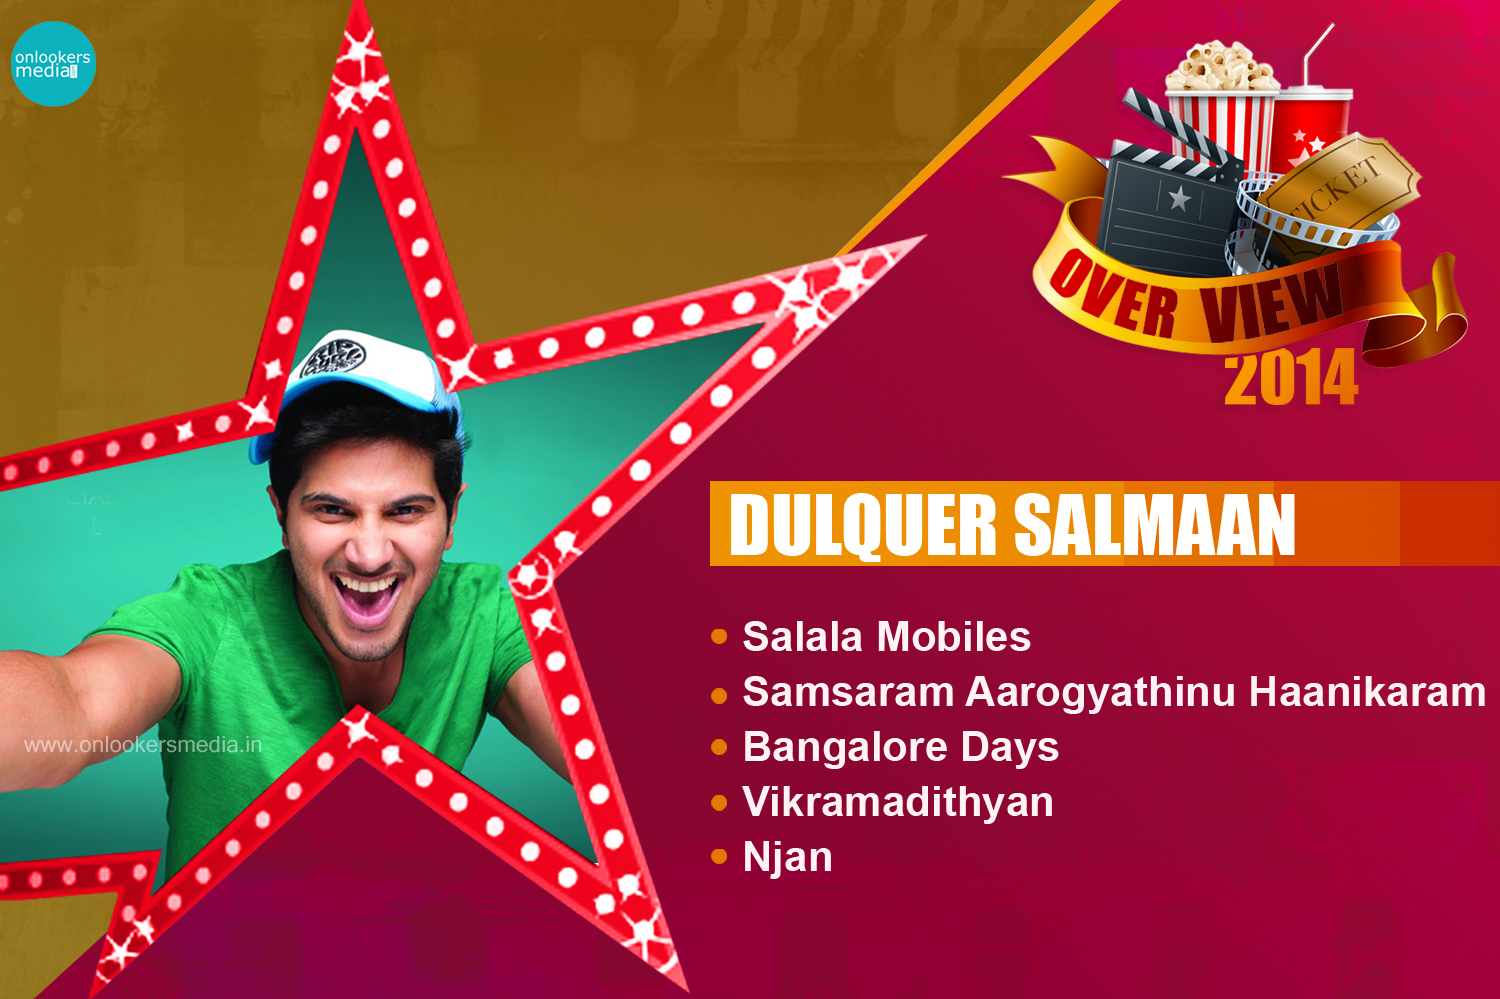 Dulquer Salmaan 2014 Overview-Report-Hit Flop Movie List-Vikramadithyan-Banglore Days-Njan-Salala Mobiles-Samsaram Arogyathinu Hanikaram-Onlookers Media